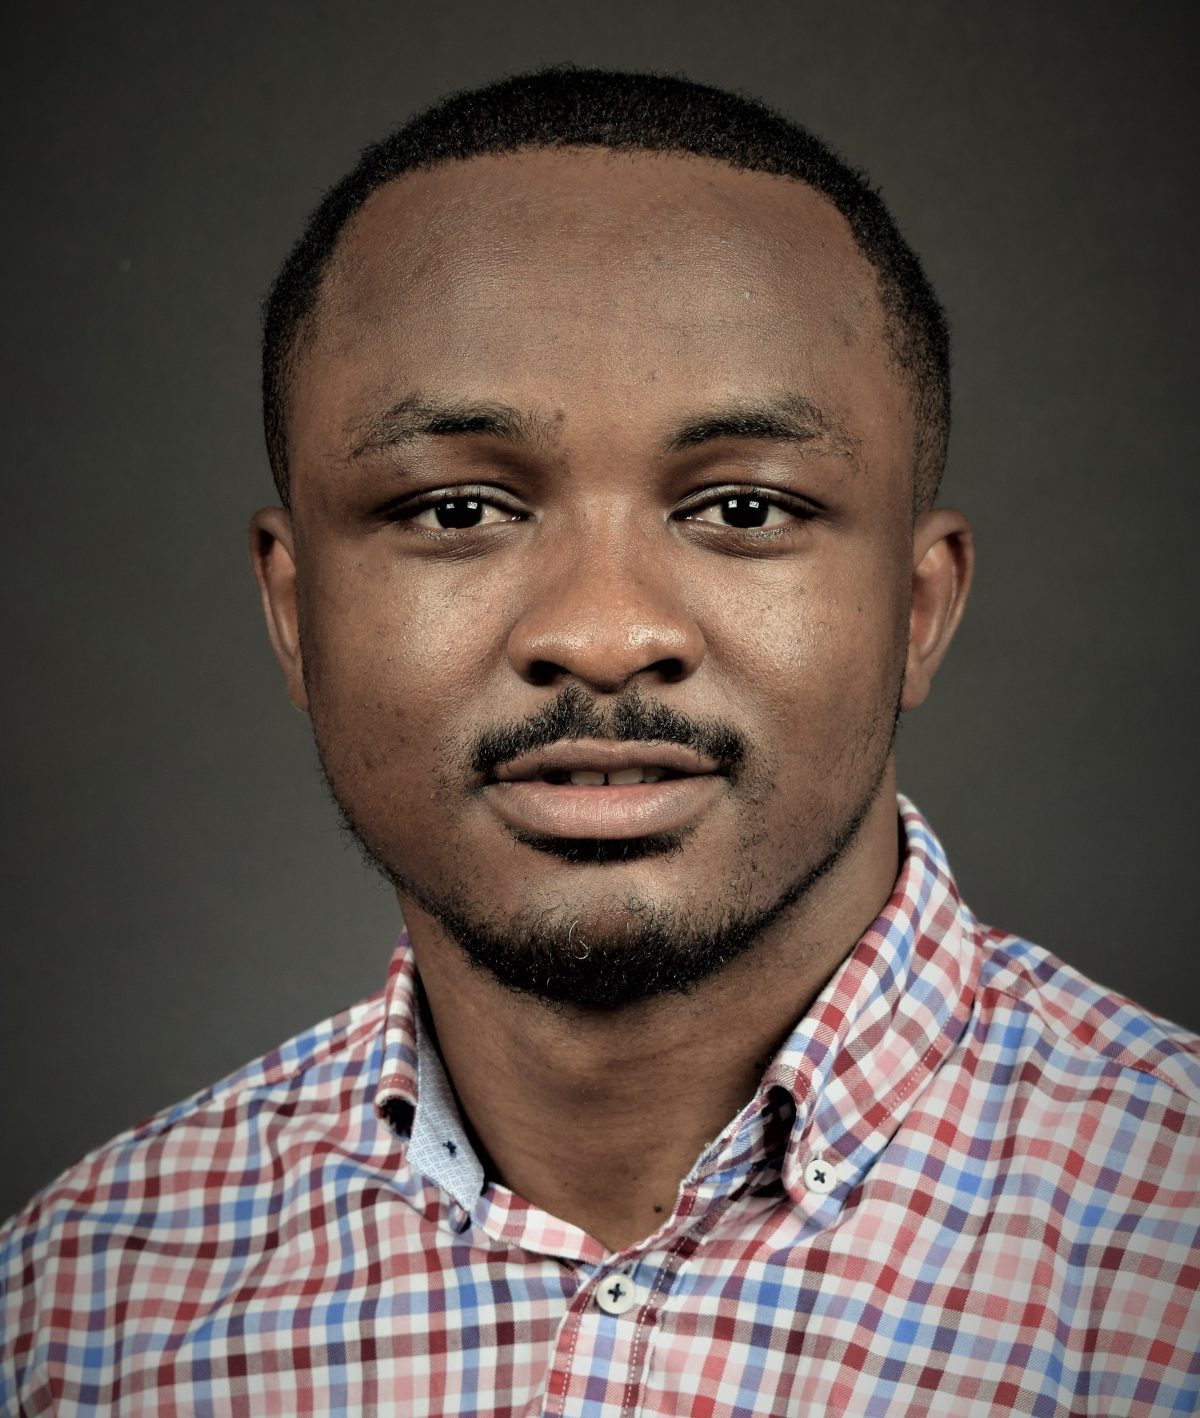 Welcome Kingsley Ikenna Aniagbaoso as ESR 12 at the University of Pau!